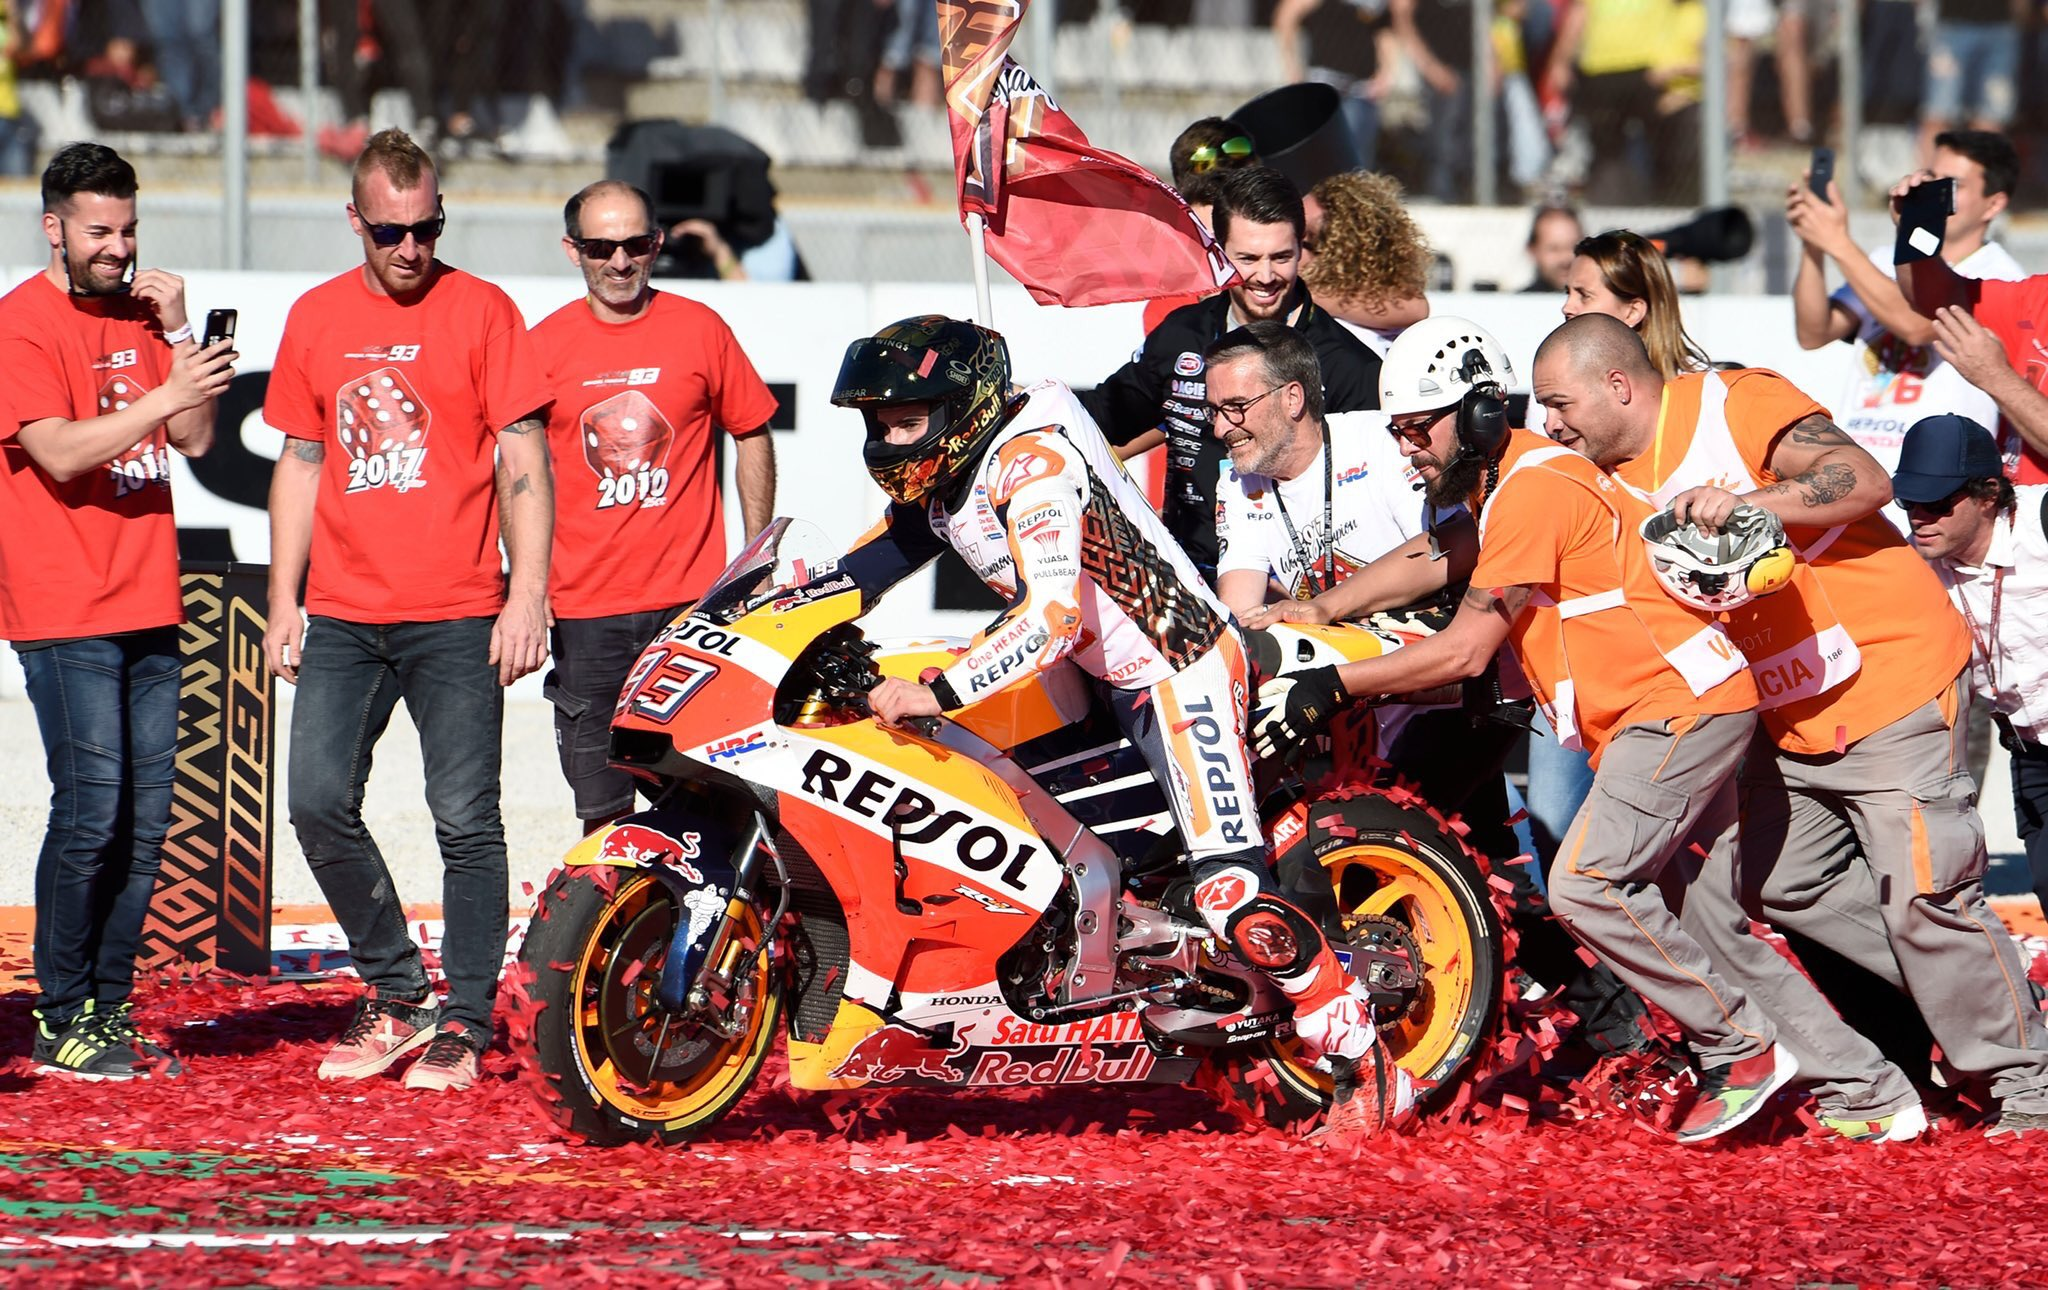 Enorme @marcmarquez93!! Muchas felicidades!!! �� https://t.co/oteUNrowLE